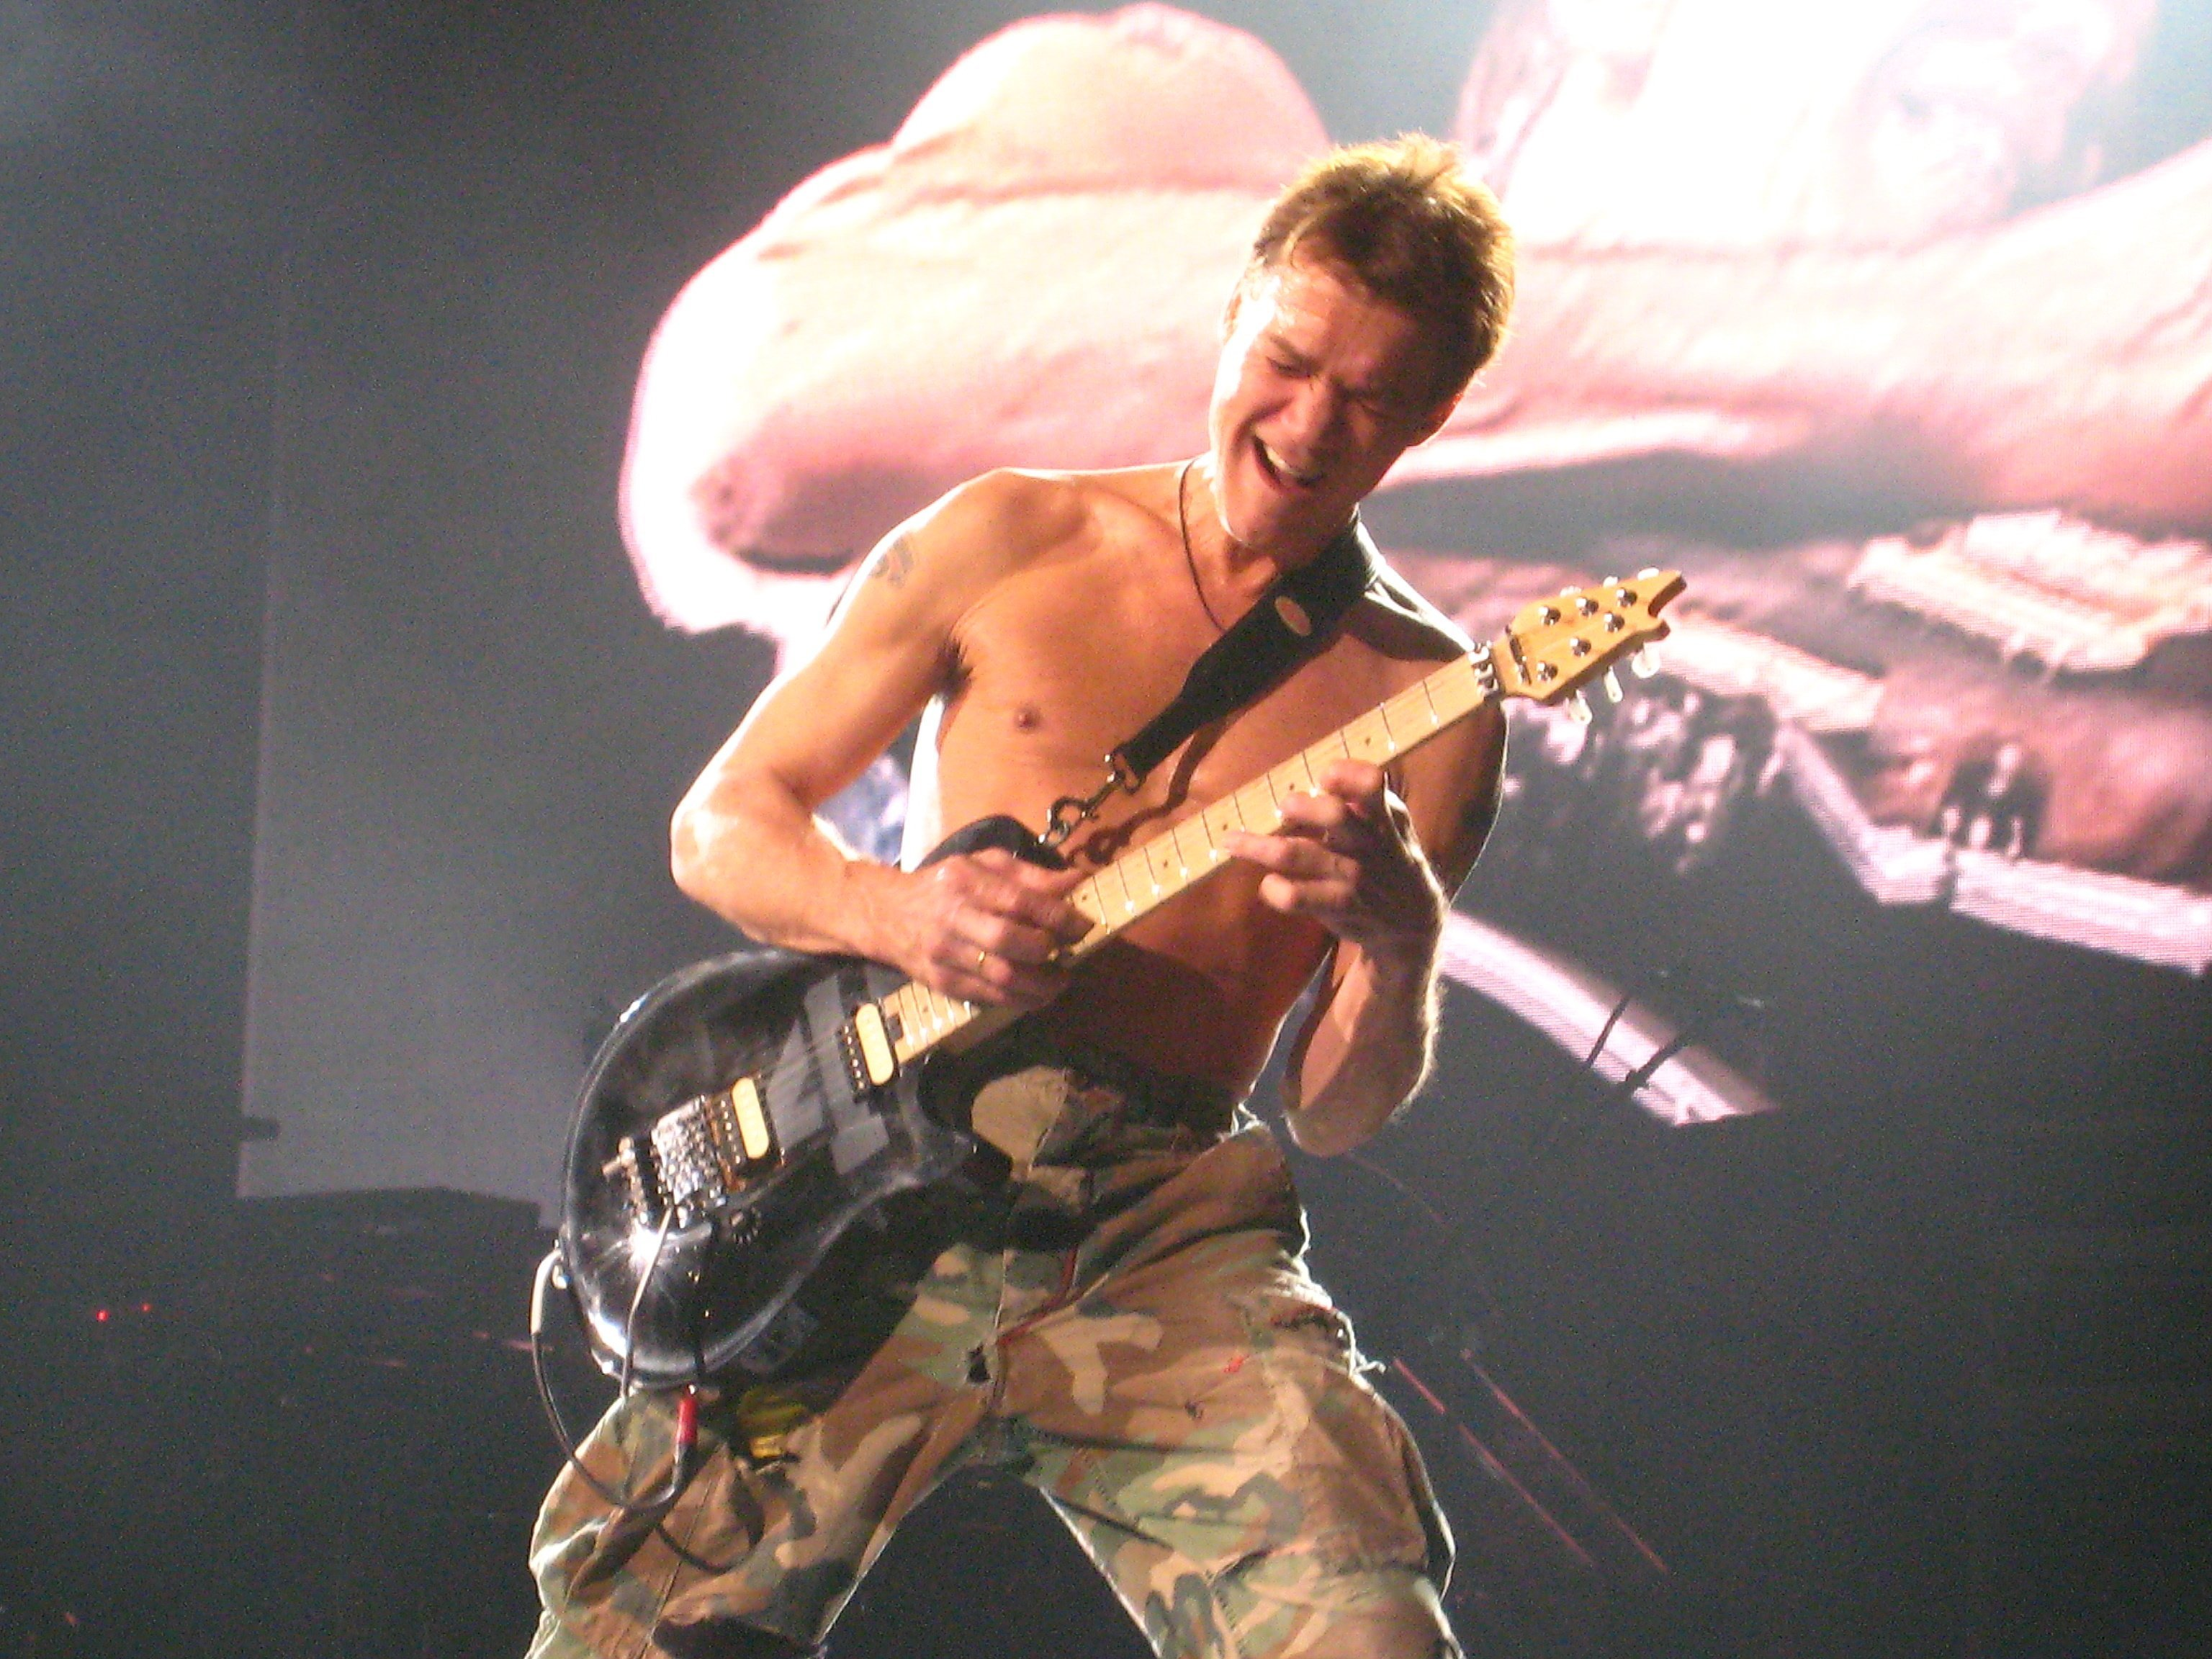 """Eddie Van Halen during the 2007 """"Eruption"""" tour in Bell Center, Montreal on November 10, 2007. 